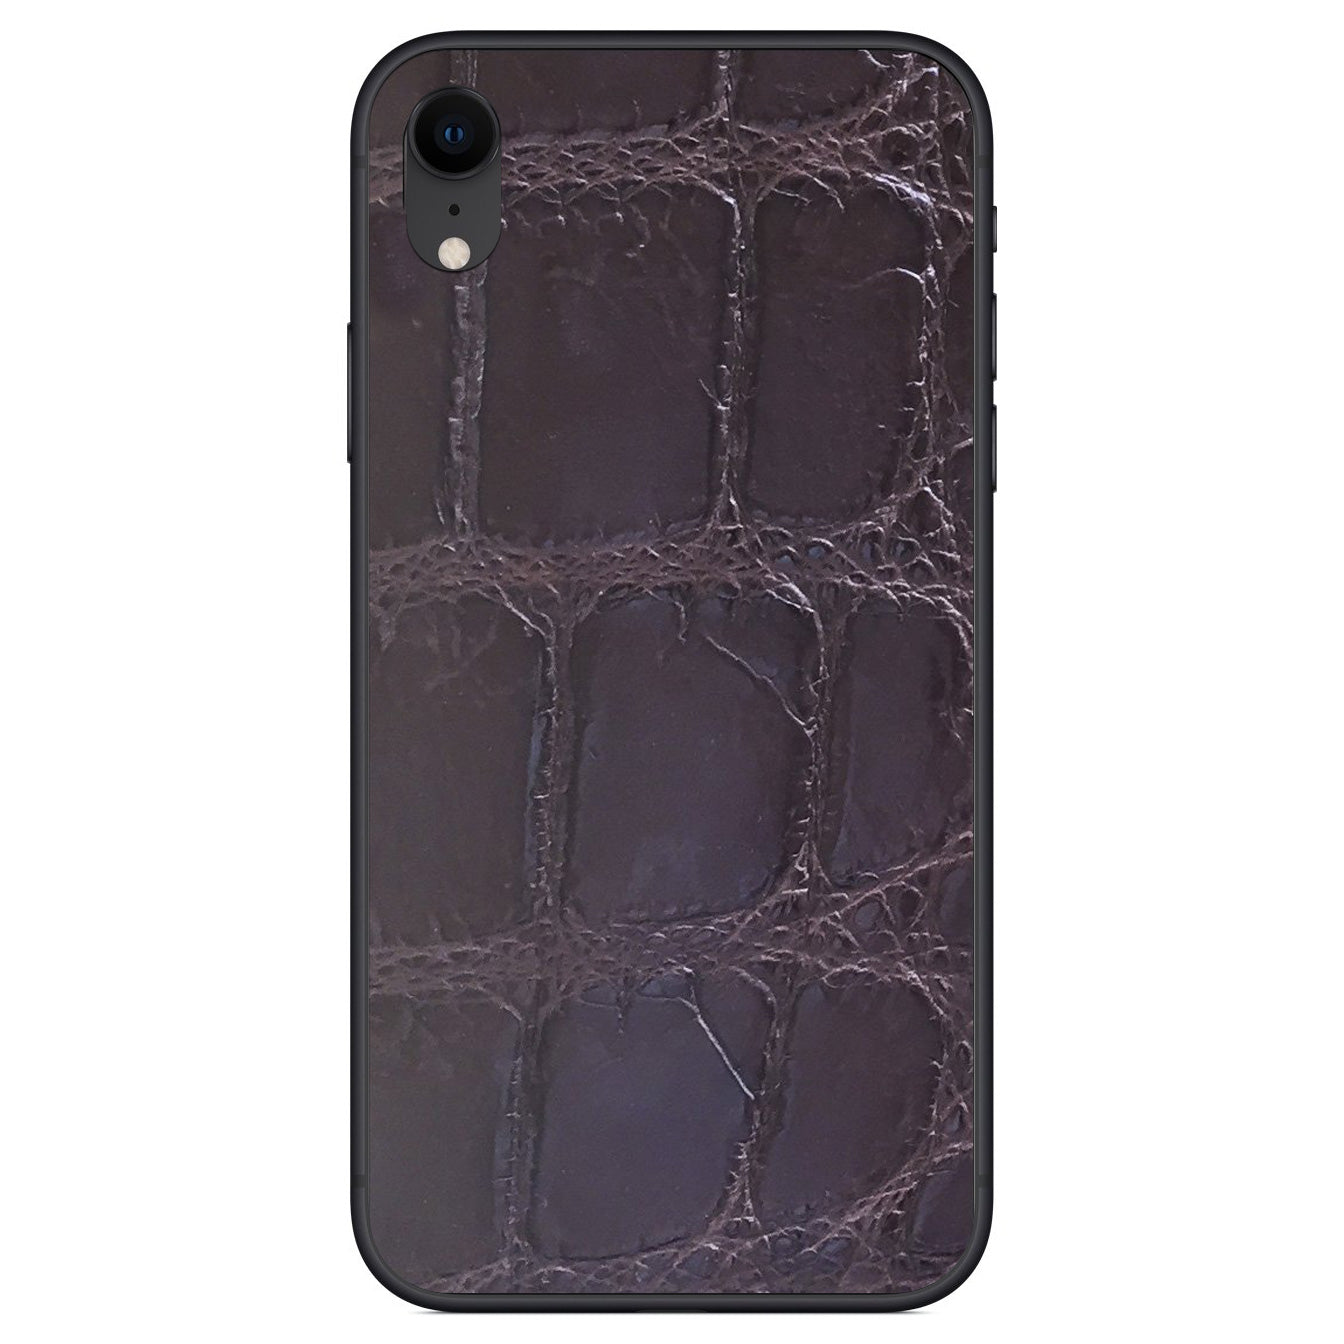 XL Brown Alligator iPhone XR Leather Skin